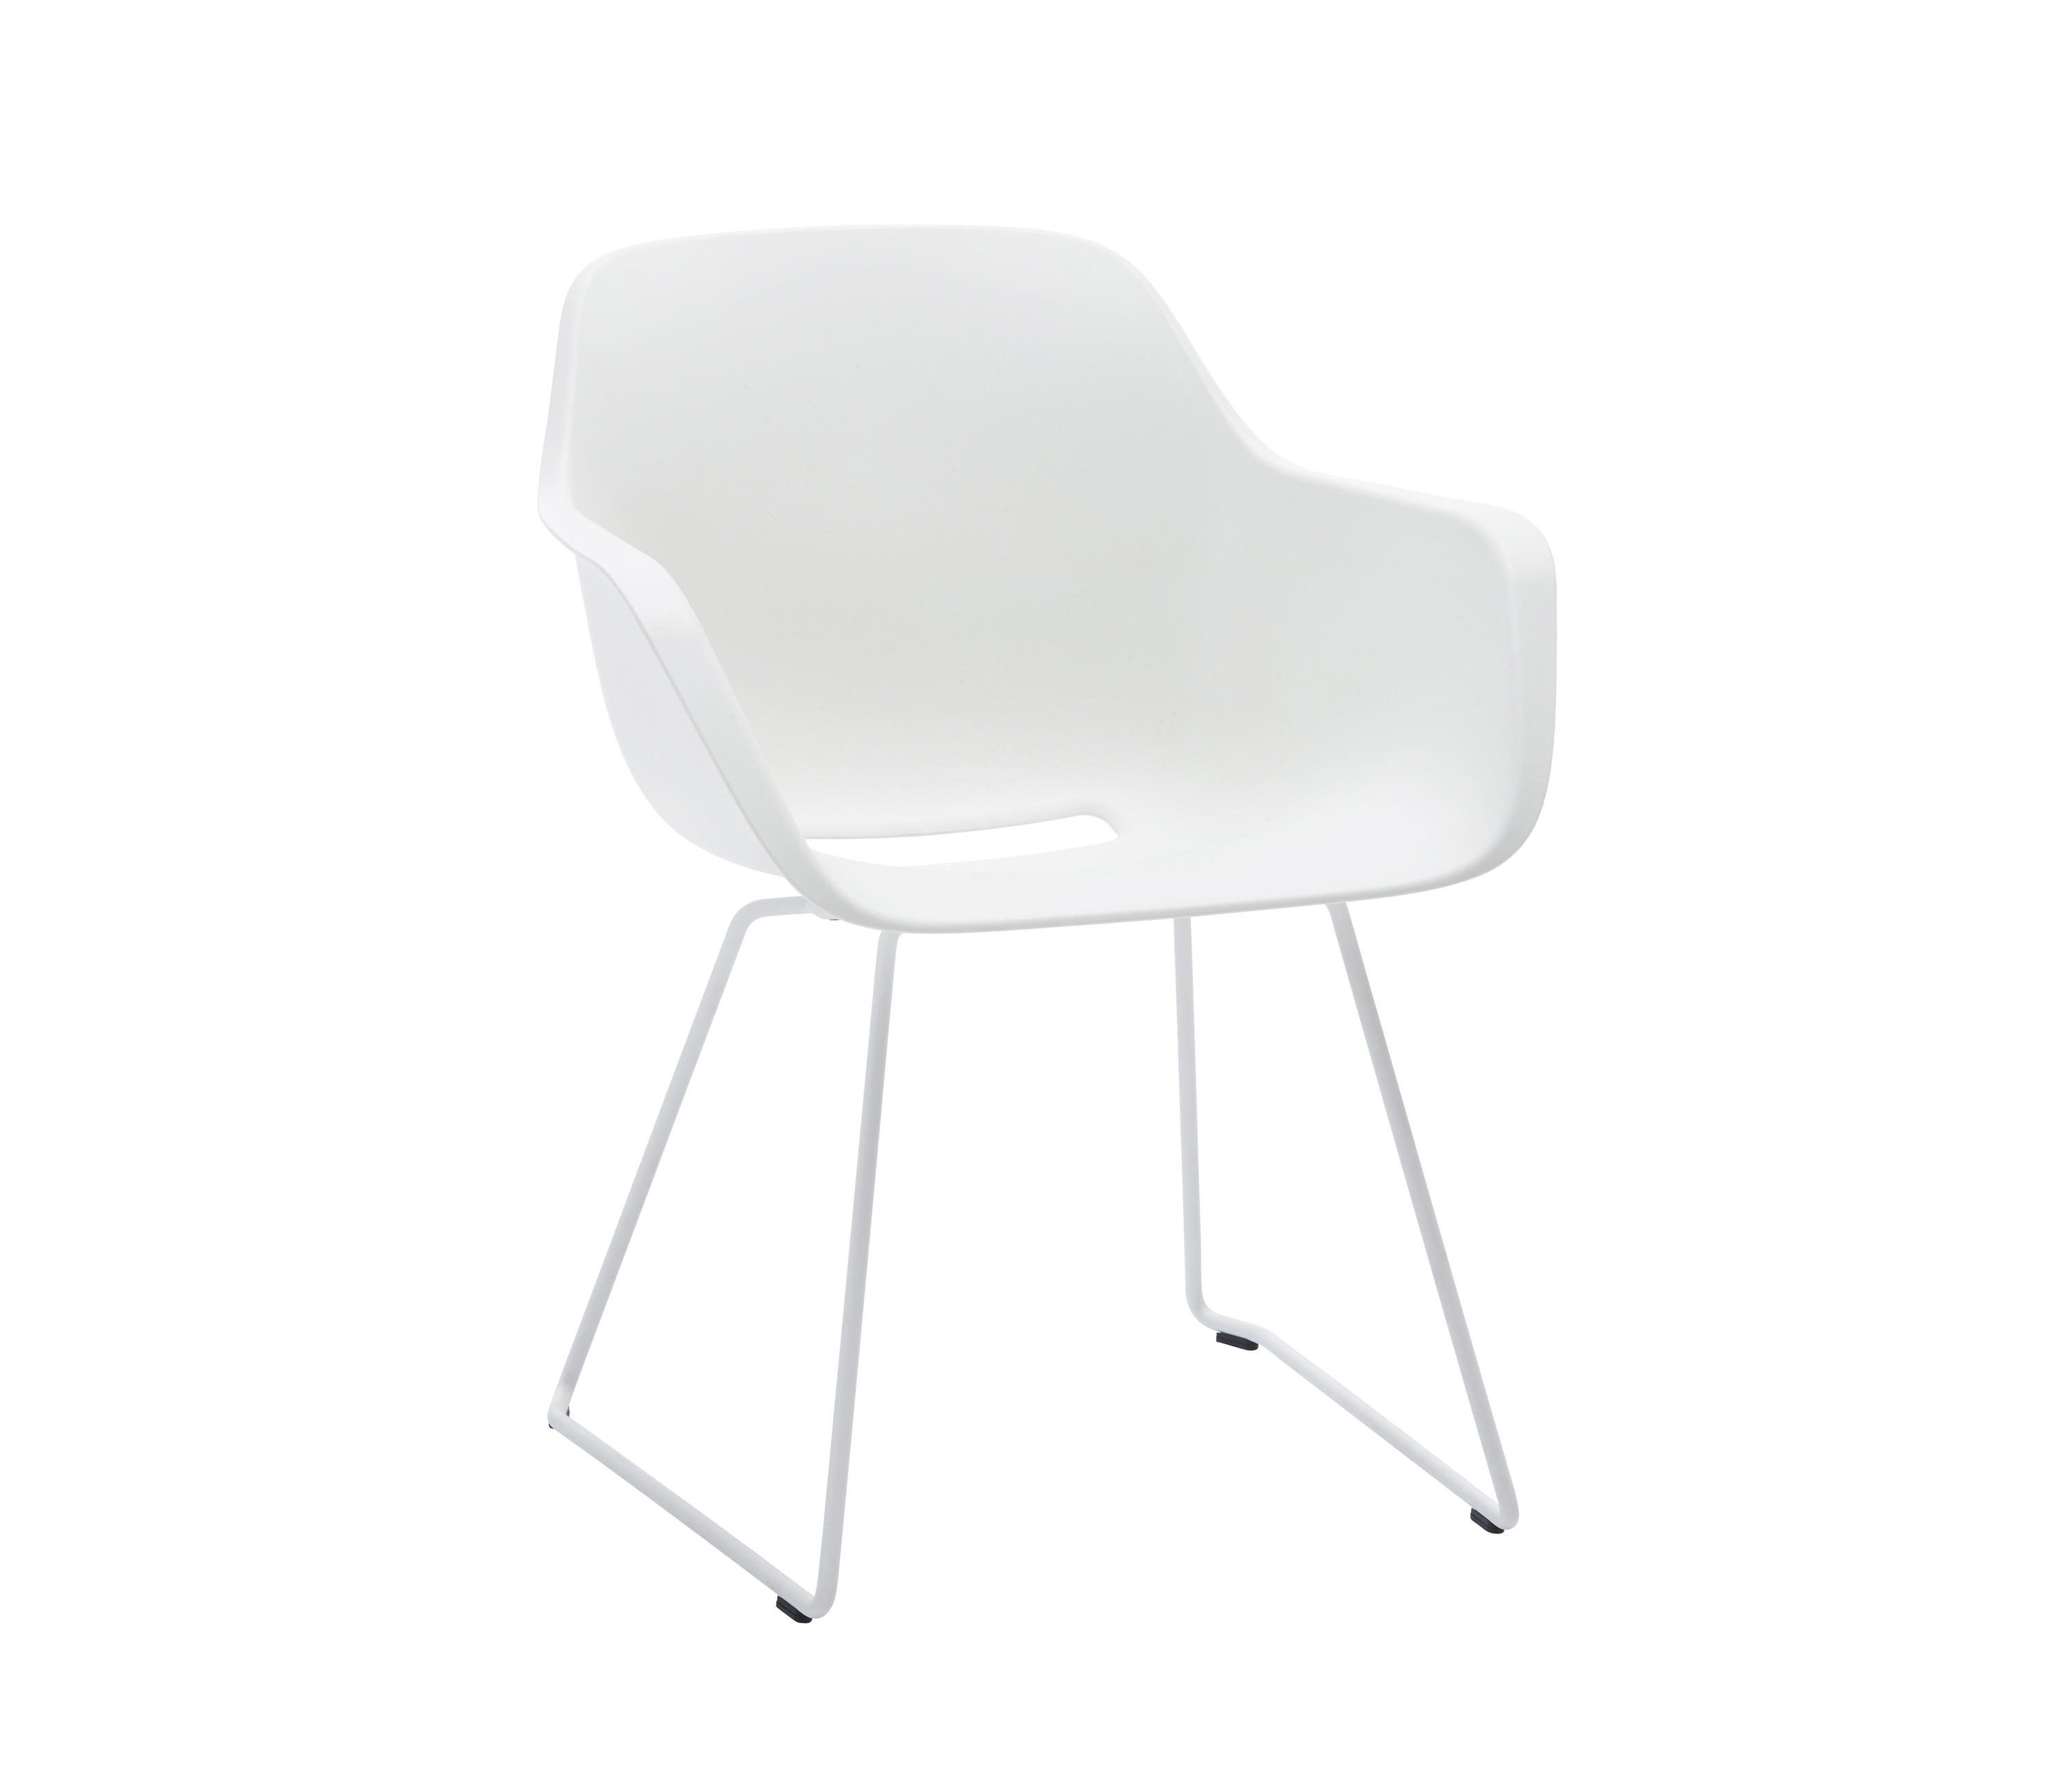 CAPTAIN\'S SLIDING CHAIR - Chairs from extremis   Architonic